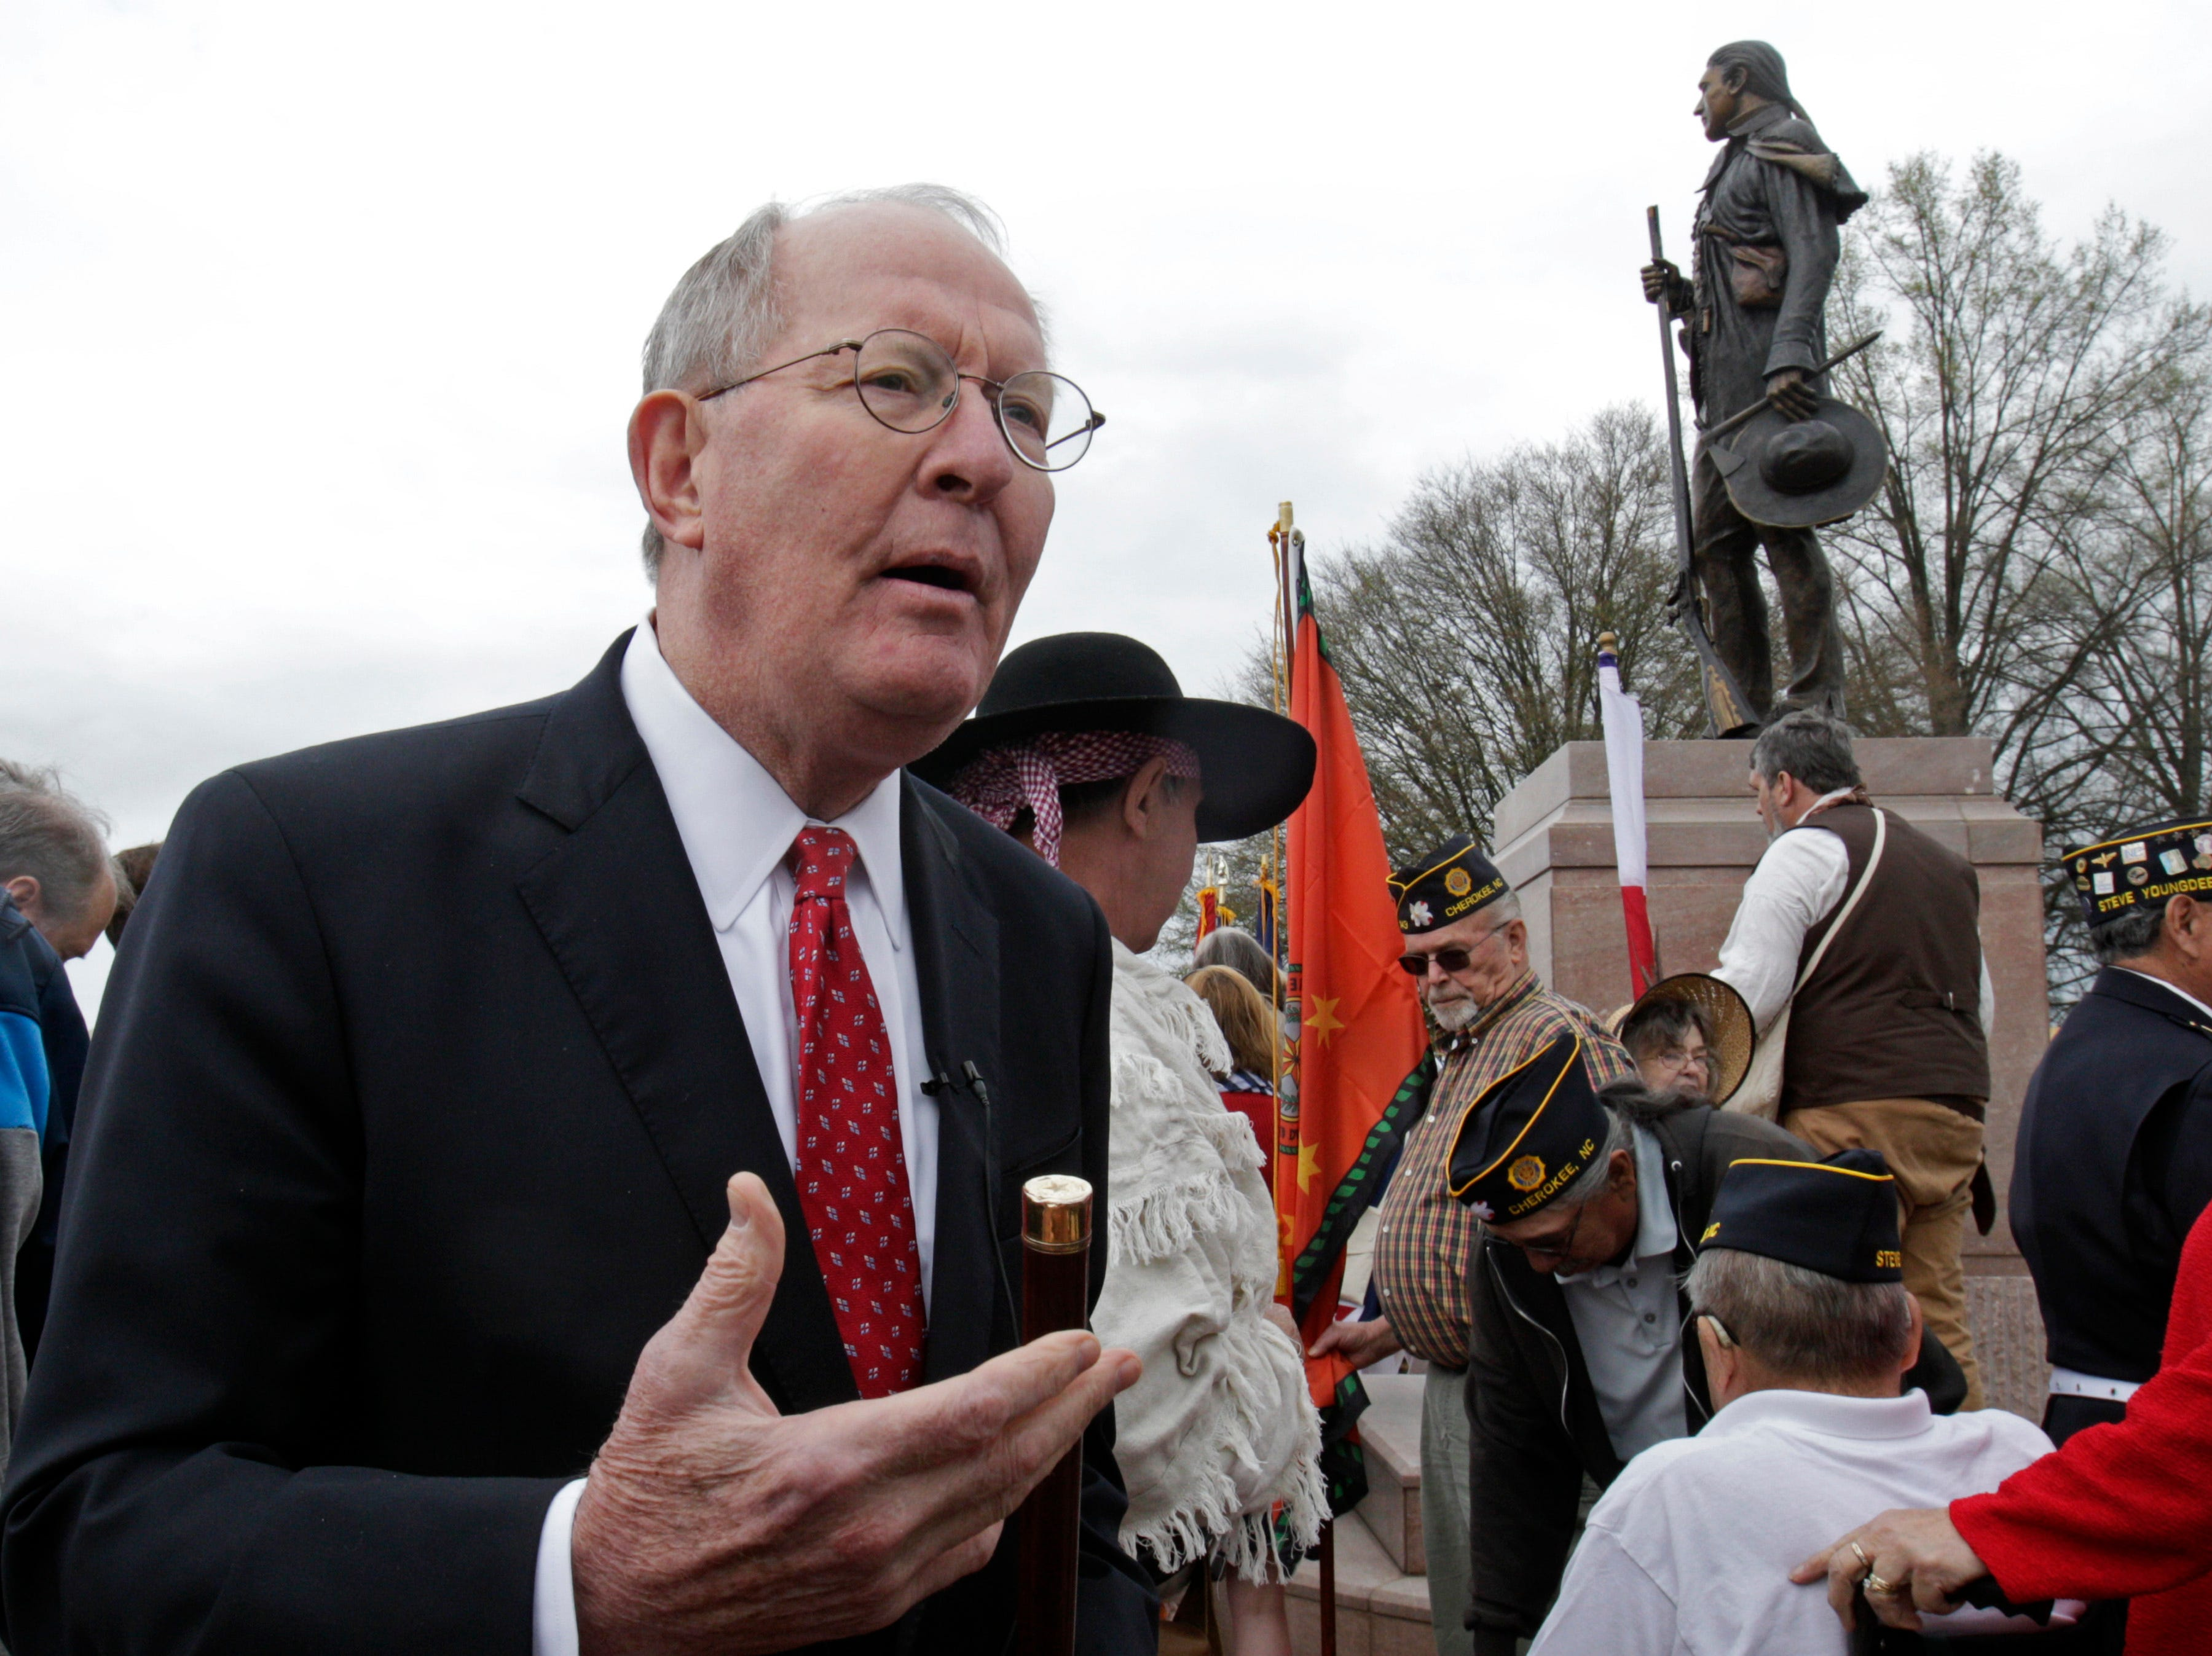 United States senator, Lamar Alexander, speaks after an unveiling of the Sam Houston statue Saturday, March 19, 2016, in Maryville, Tenn.